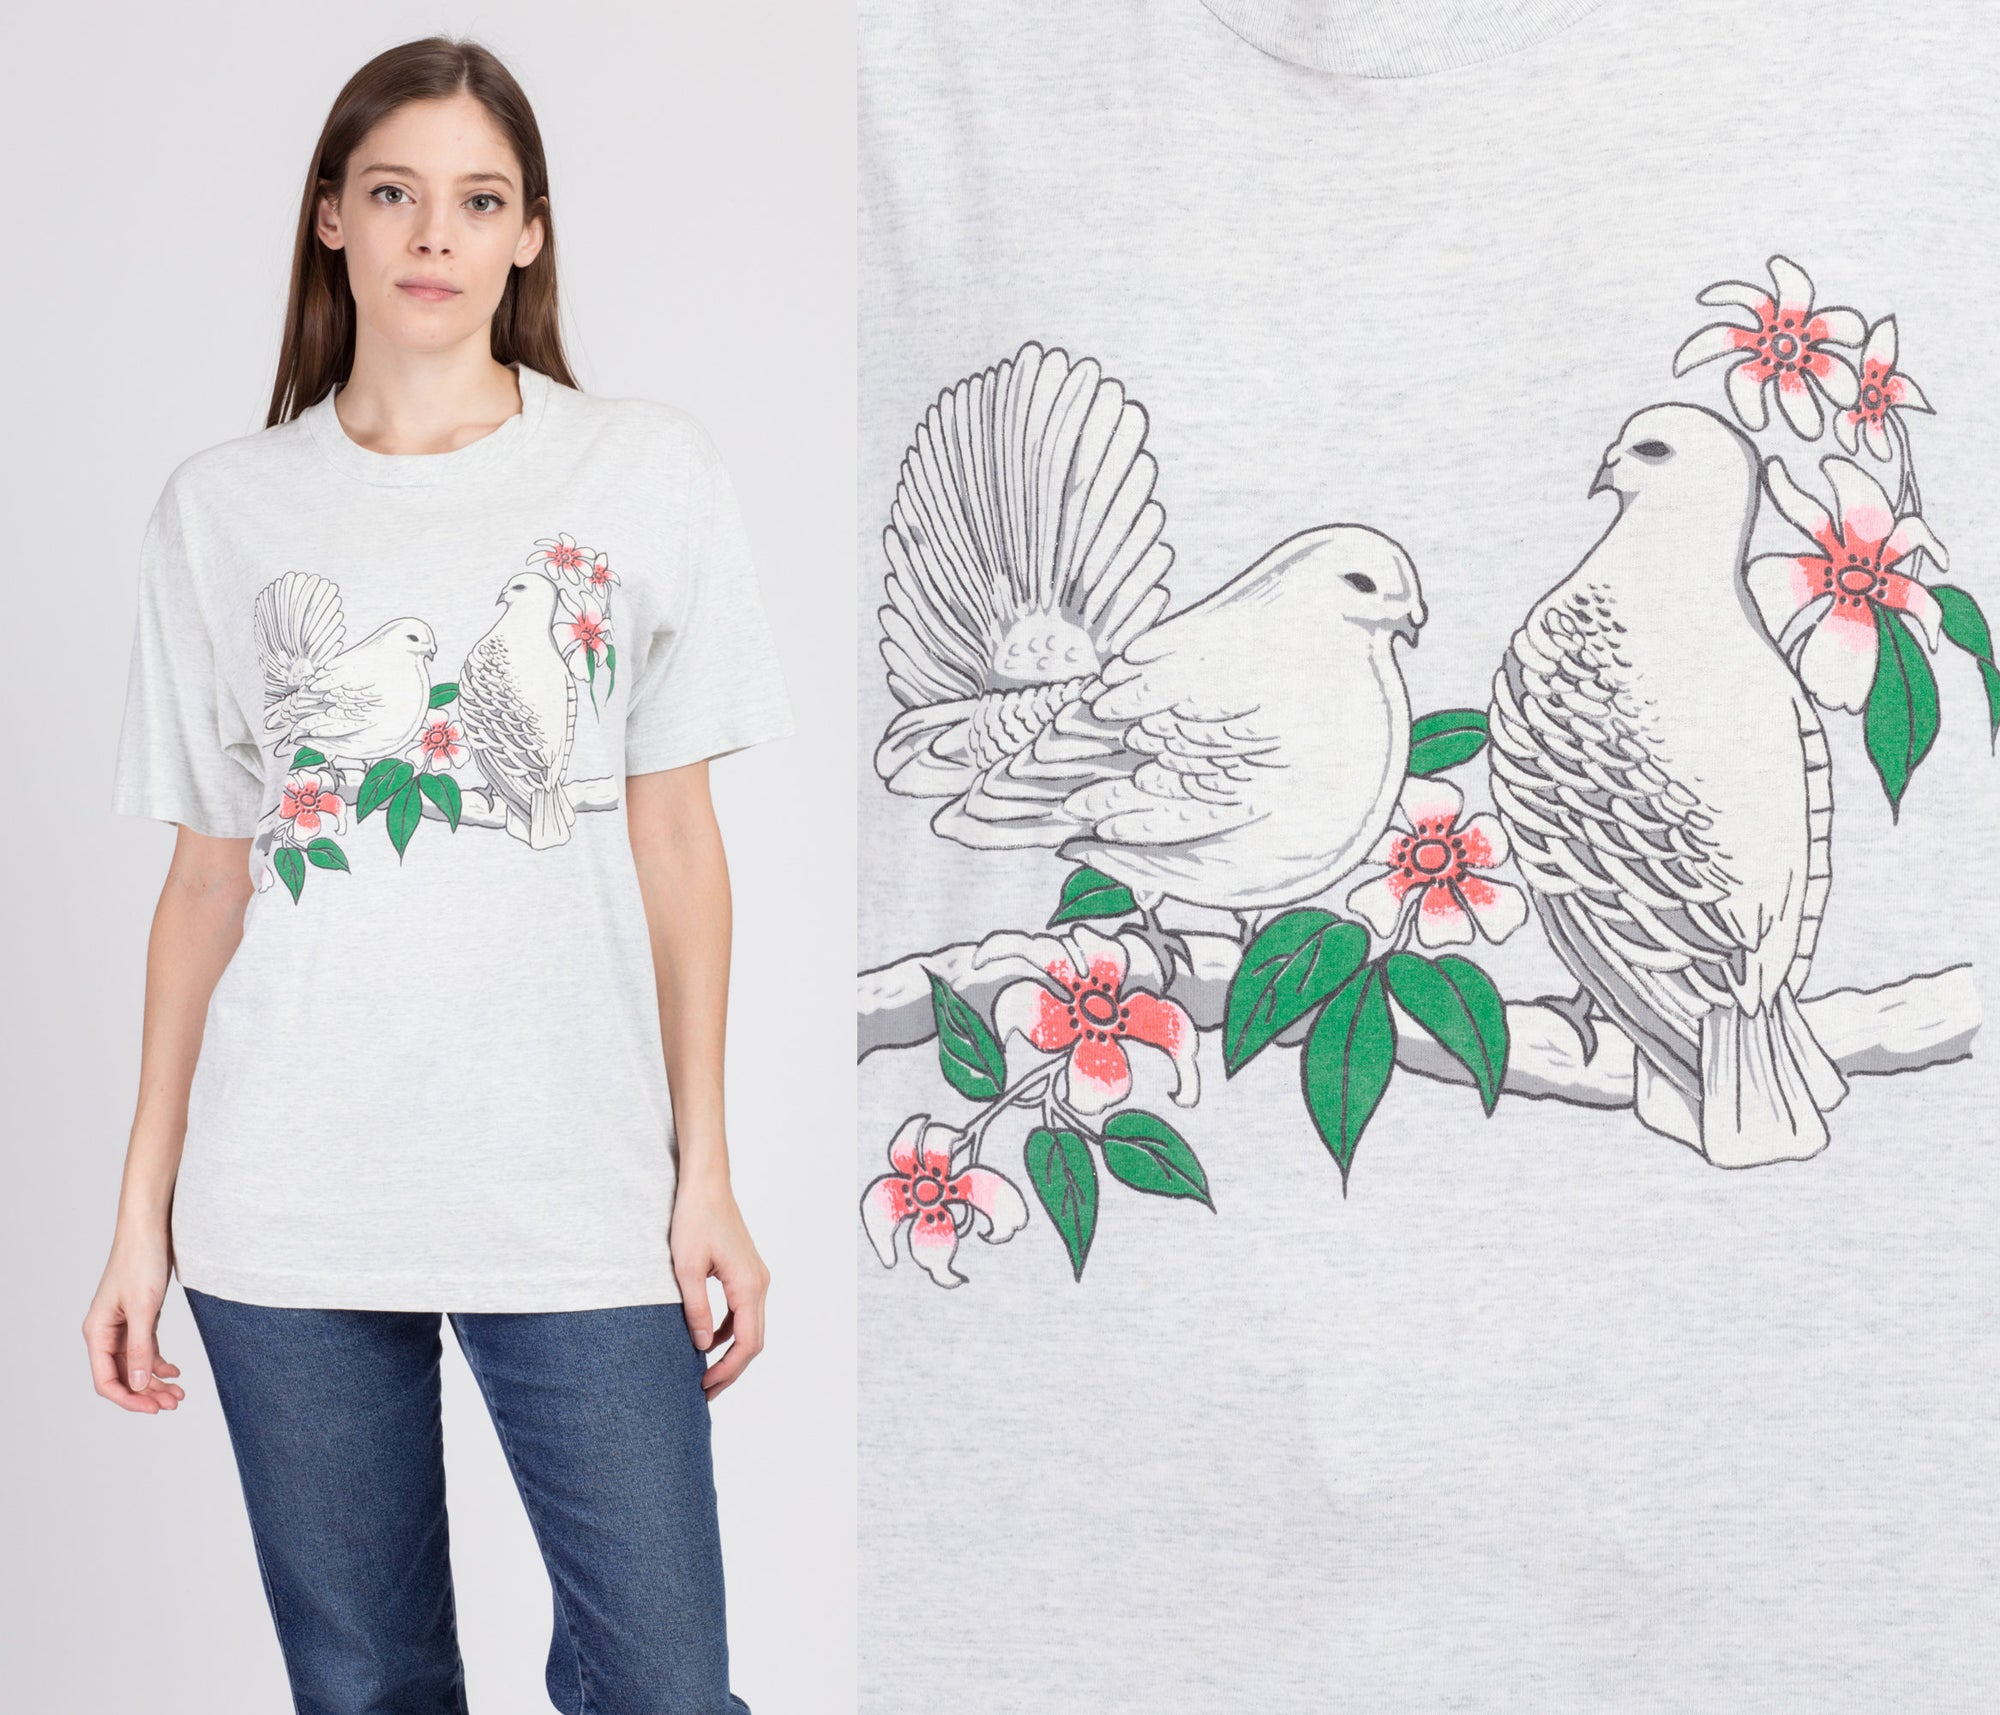 90s White Dove Graphic Tee - Women's Large